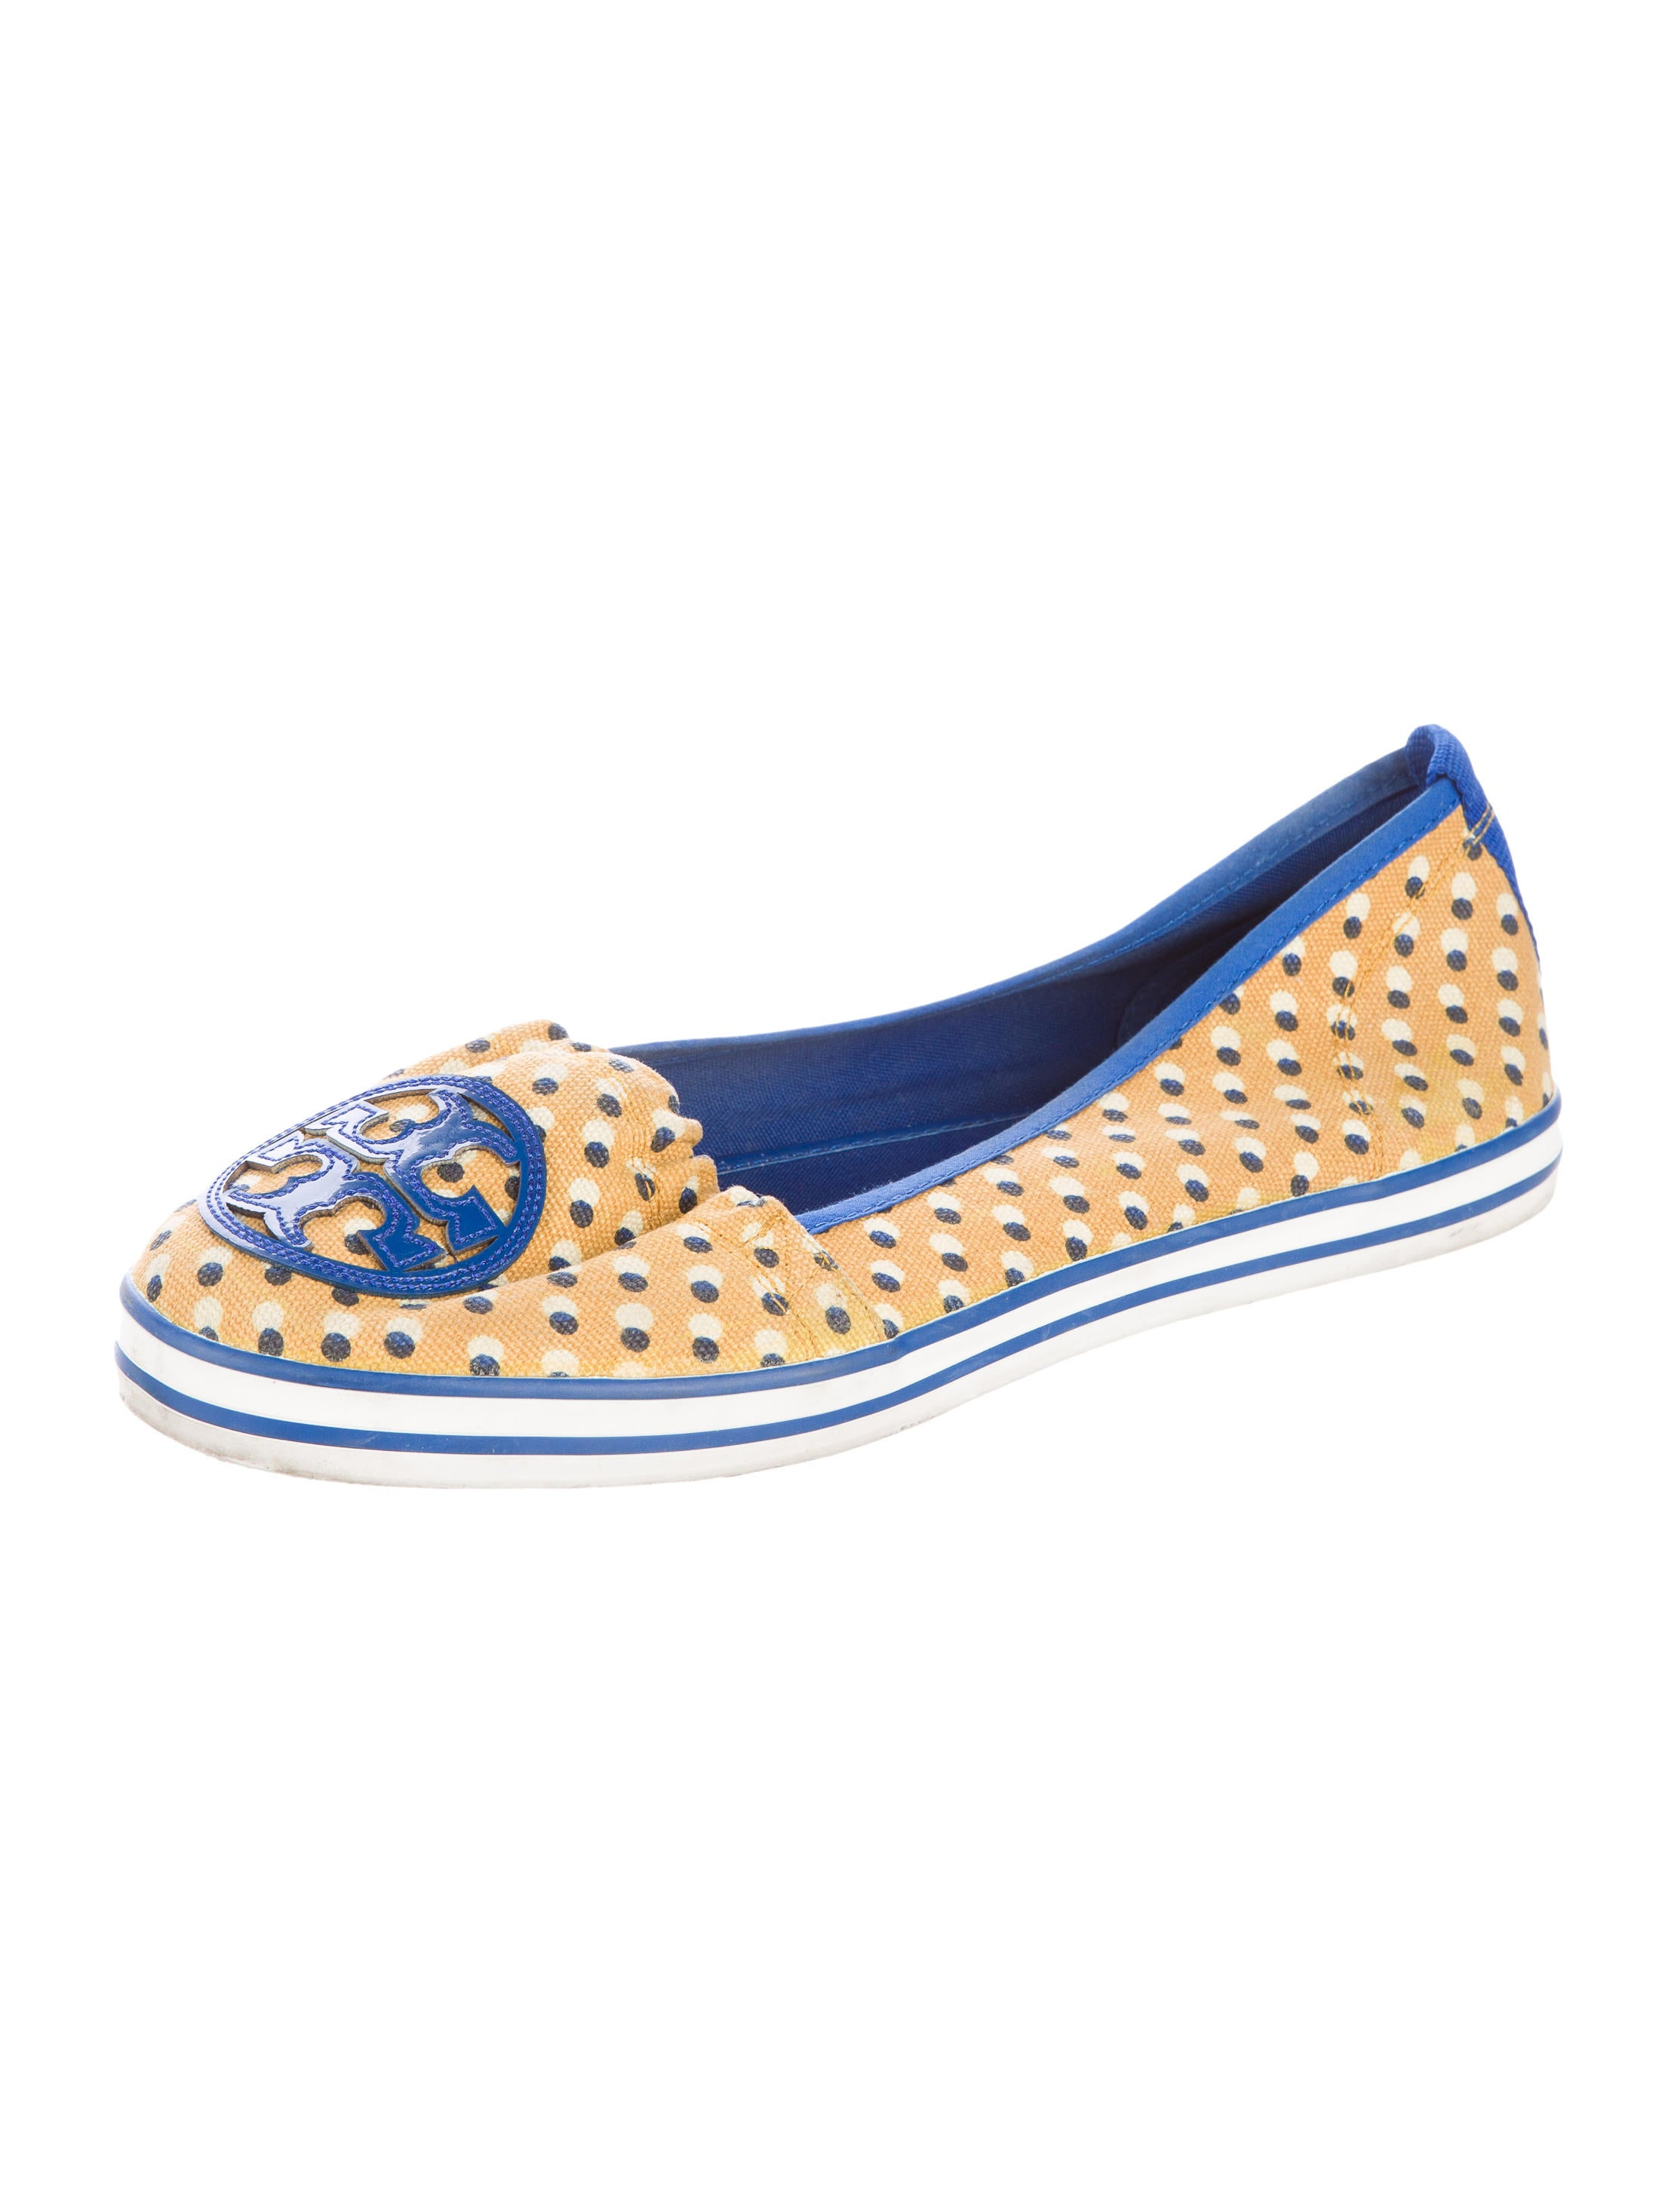 burch printed canvas flats shoes wto69680 the